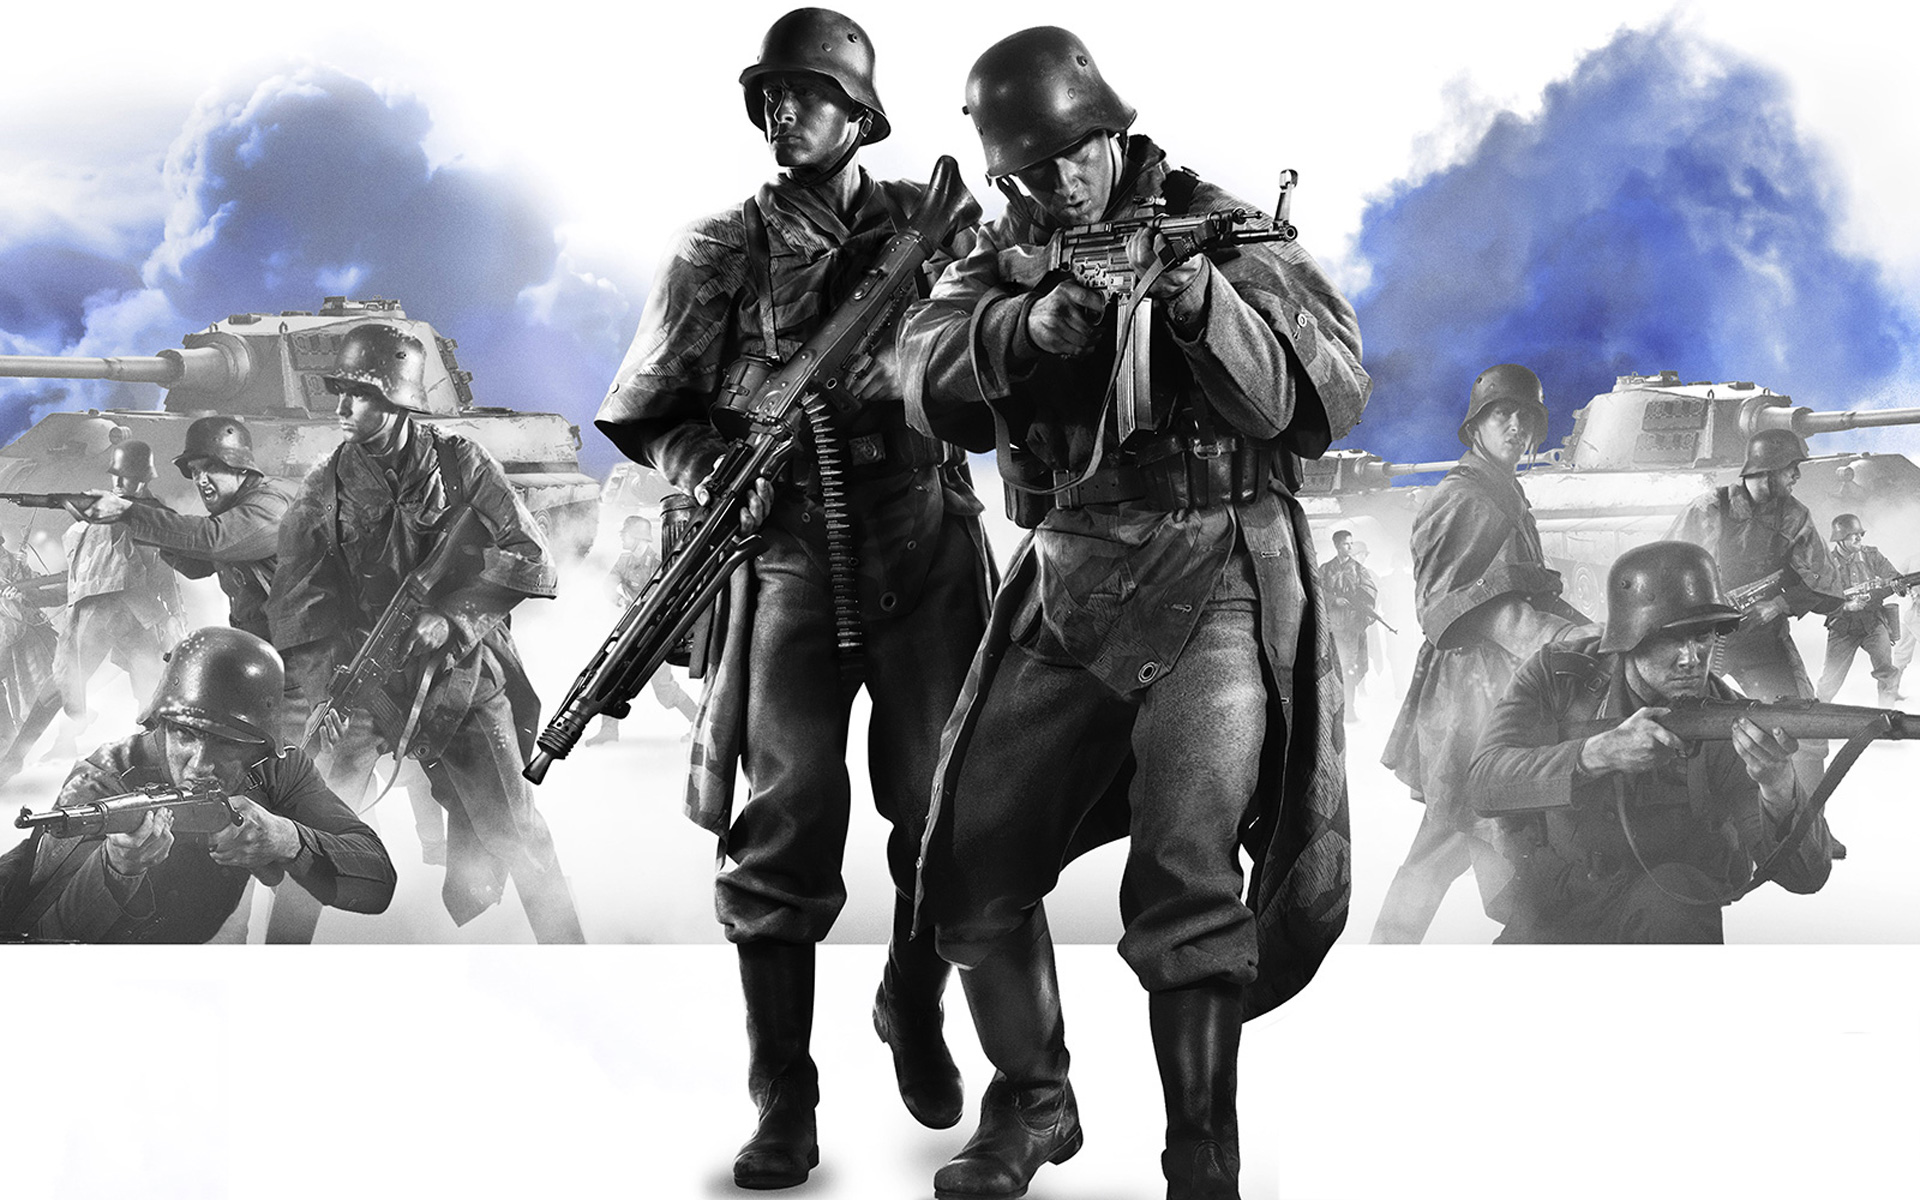 Free Company of Heroes 2 Wallpaper in 1920x1200